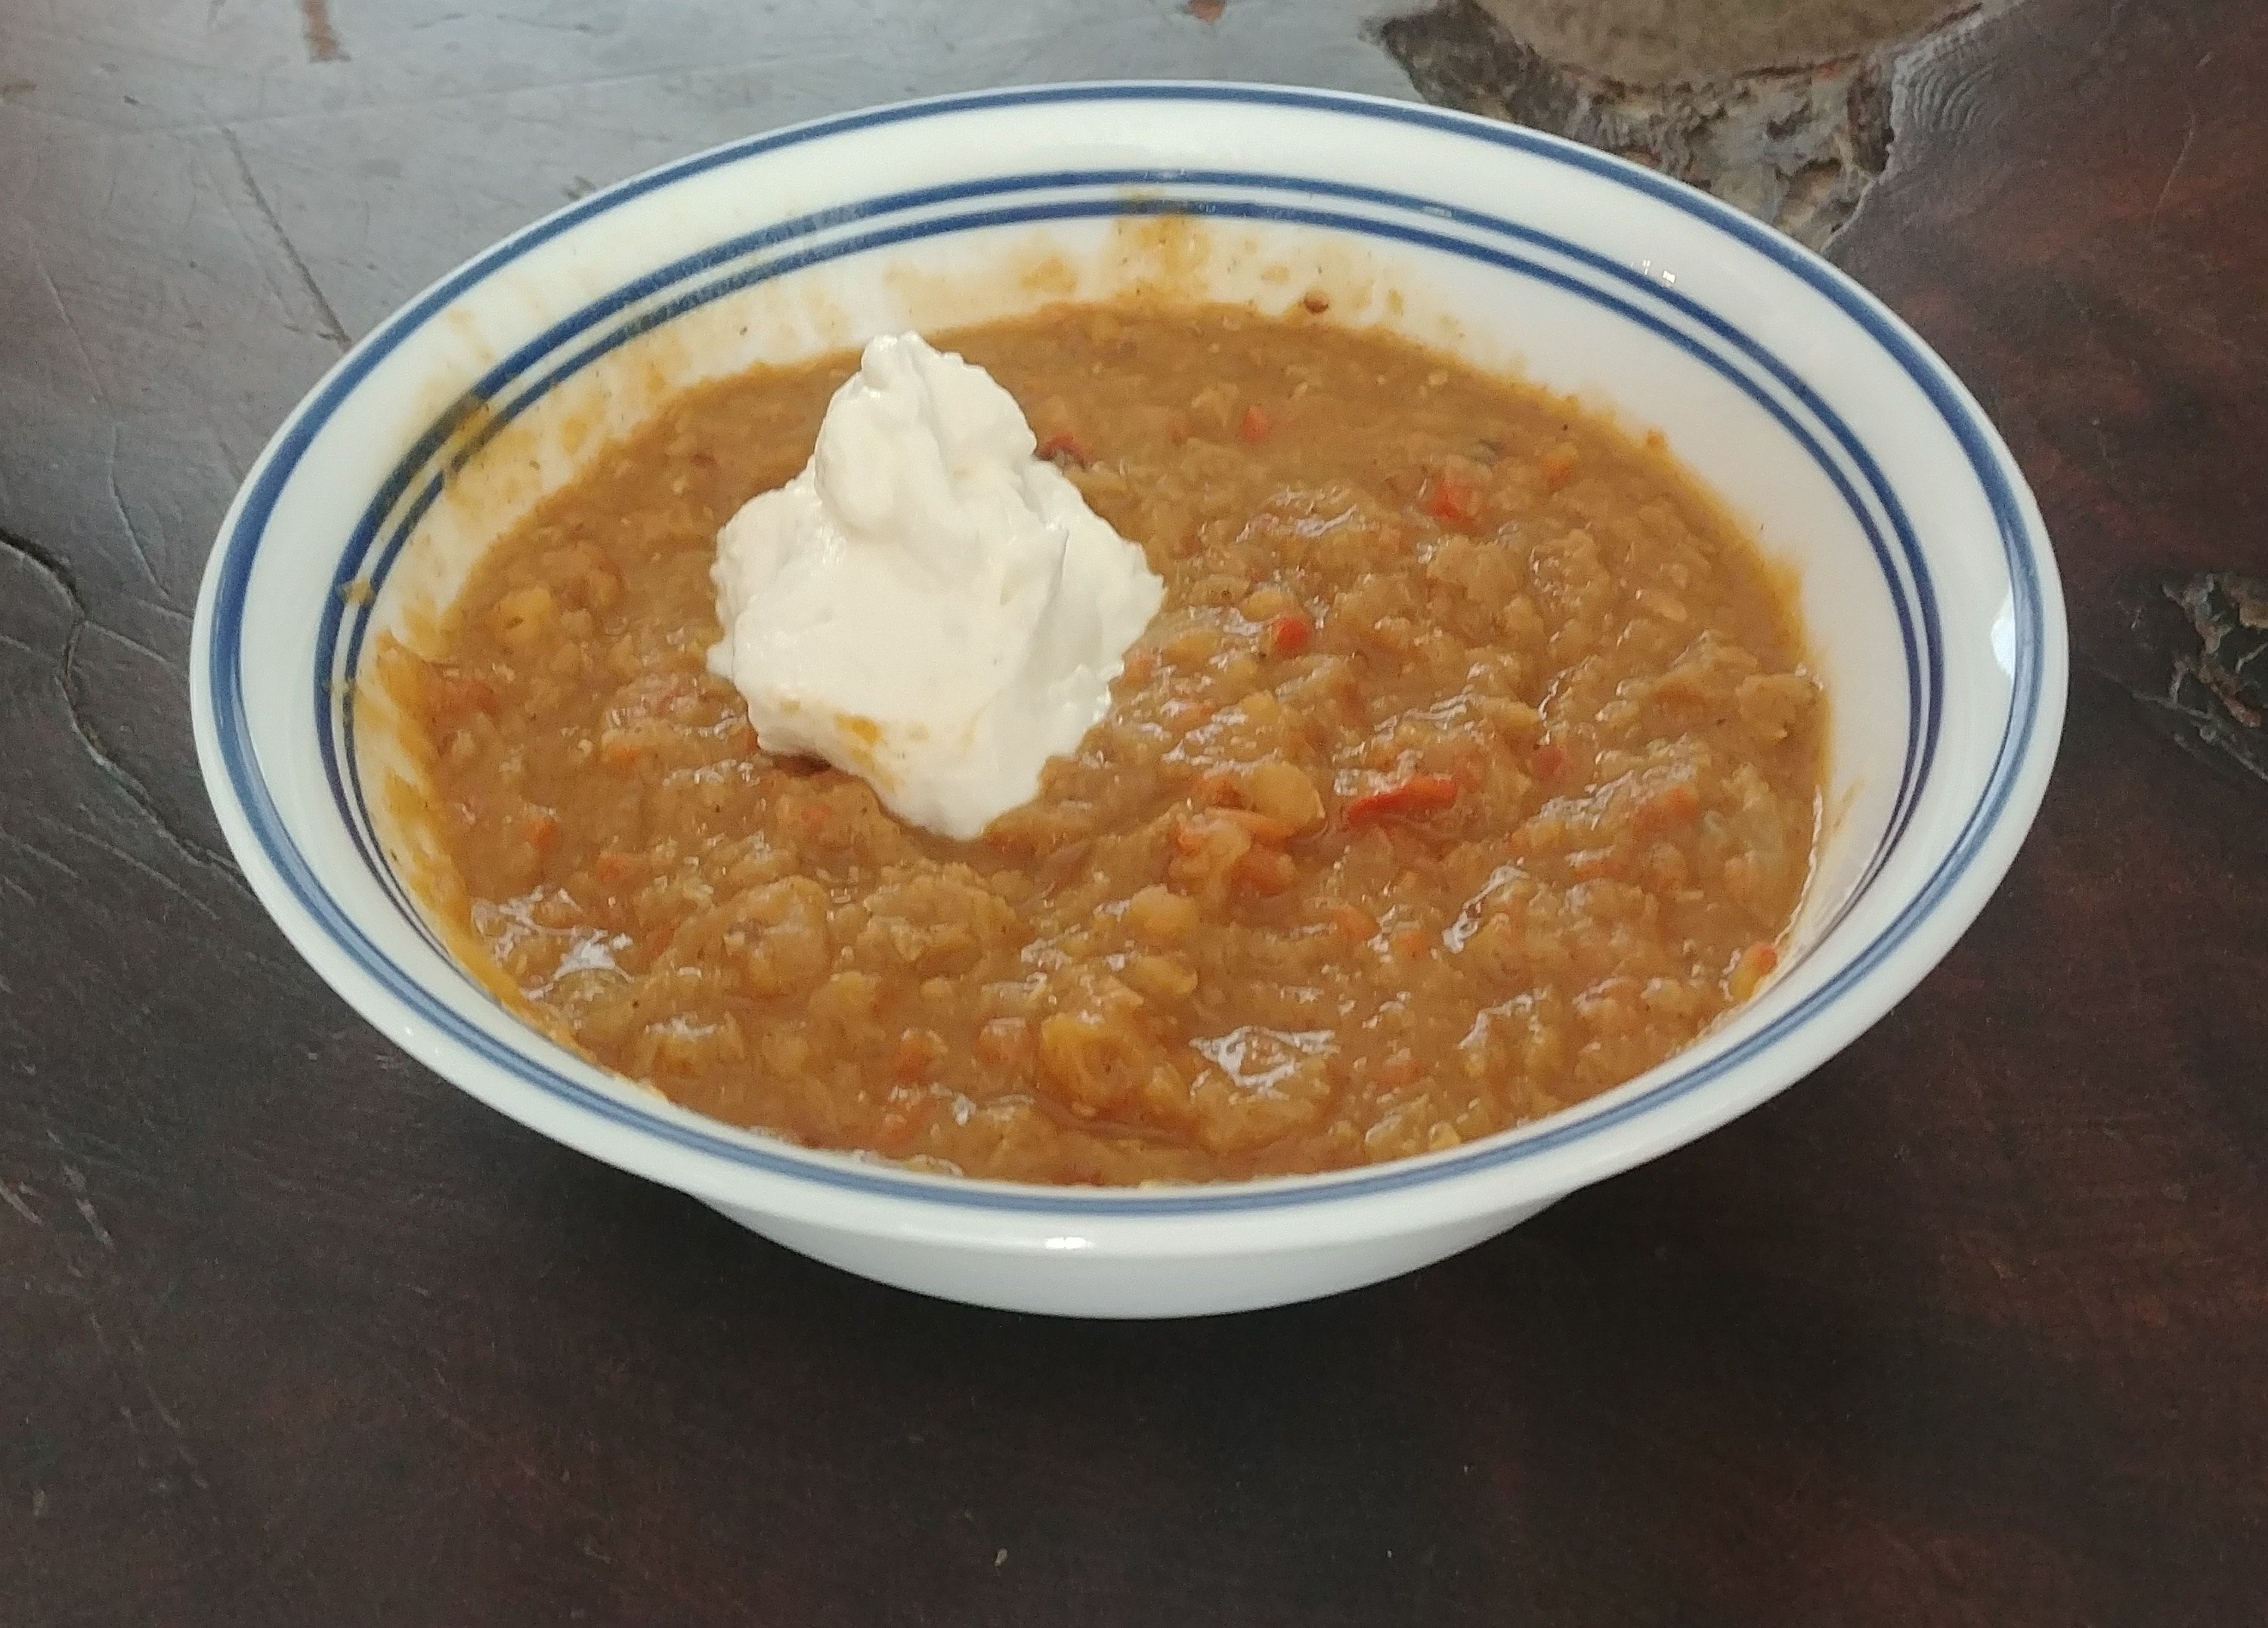 Red lentil soup topped with plain greek yogurt and a Babybel cheese